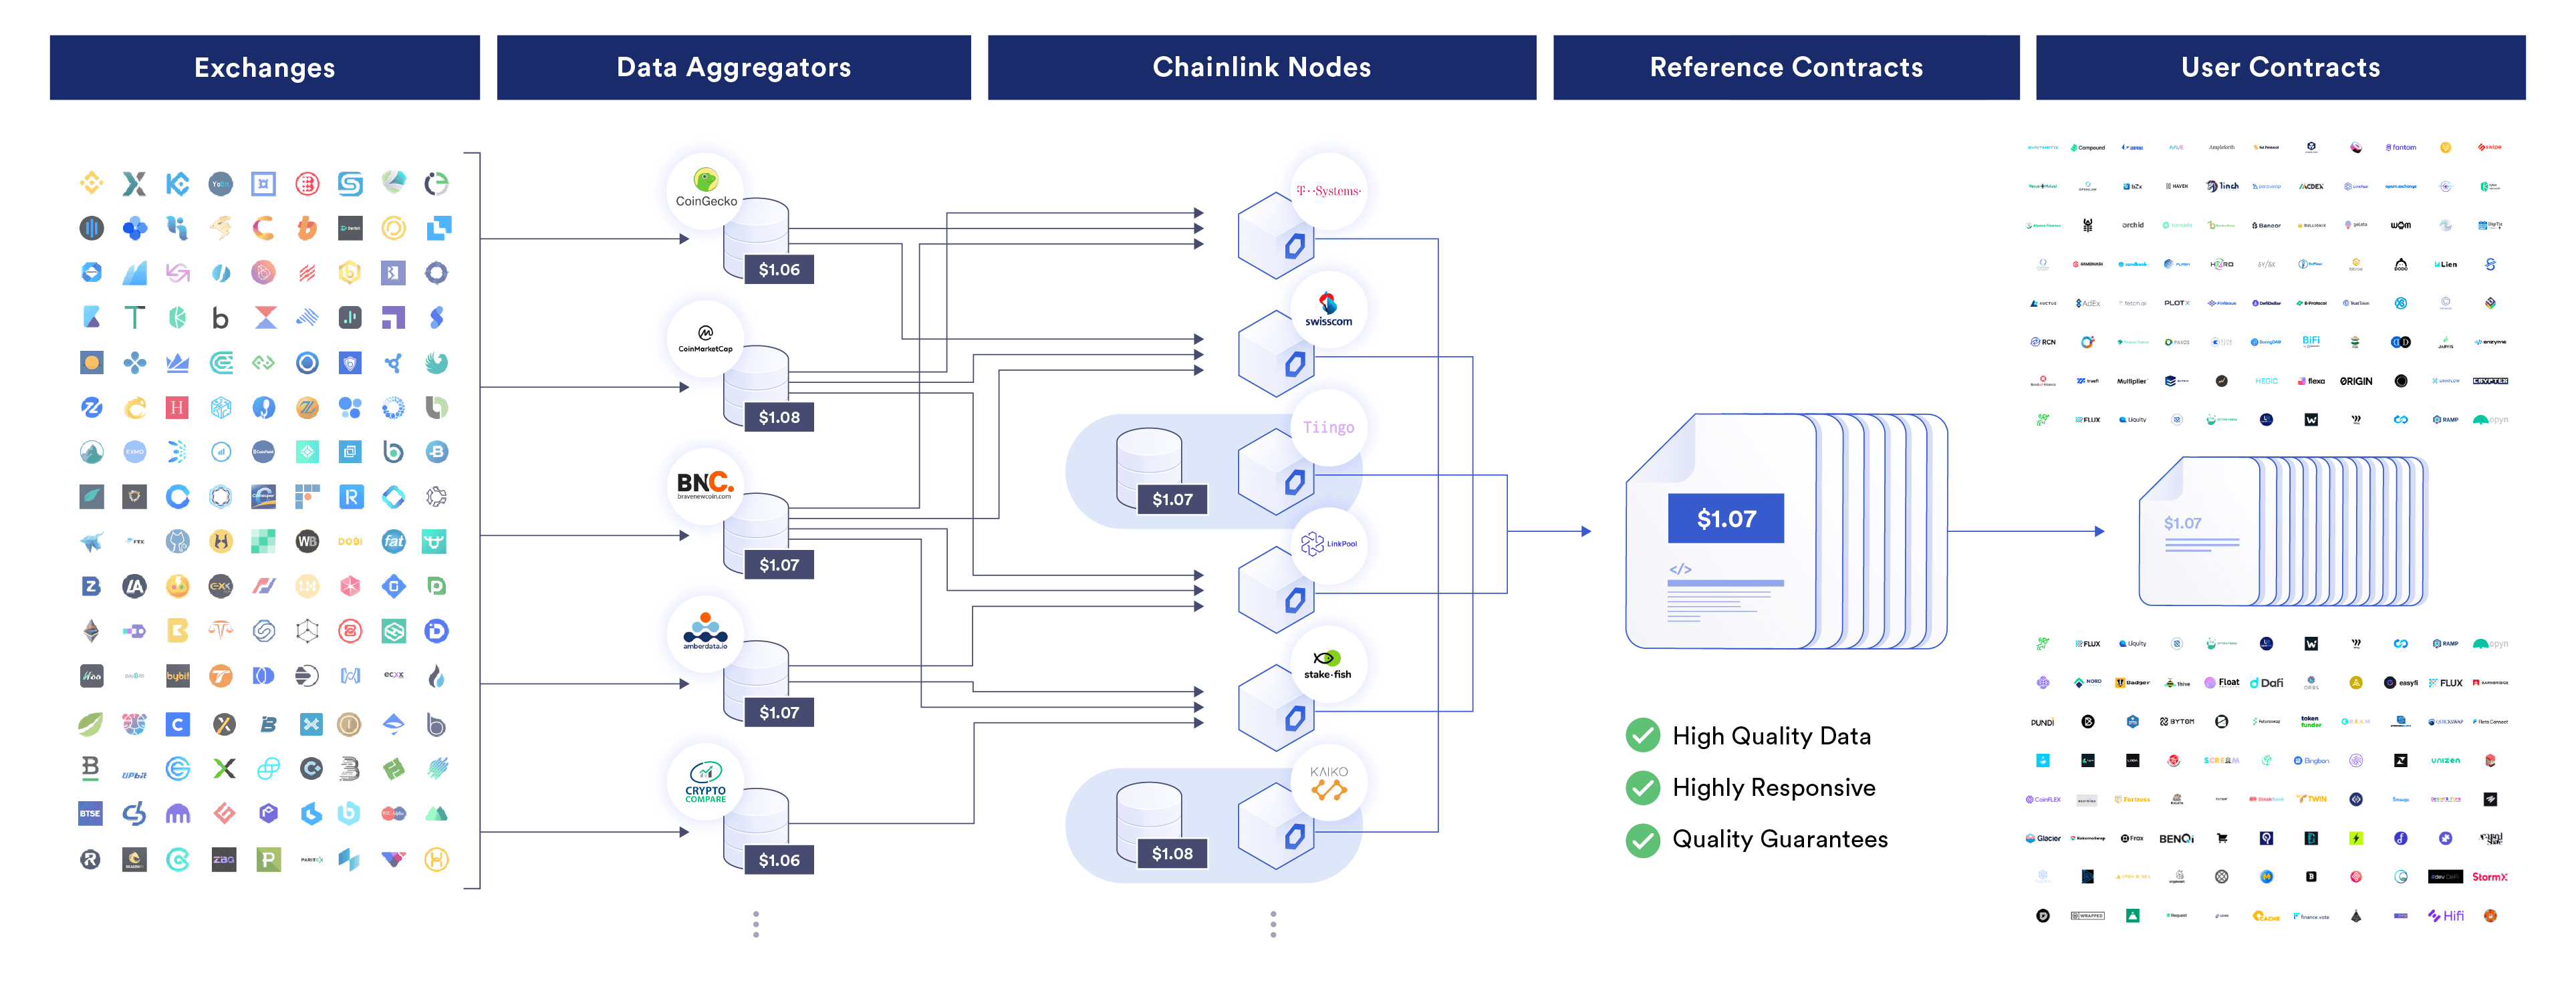 Decentralized oracle networks ensure highly reliable market data